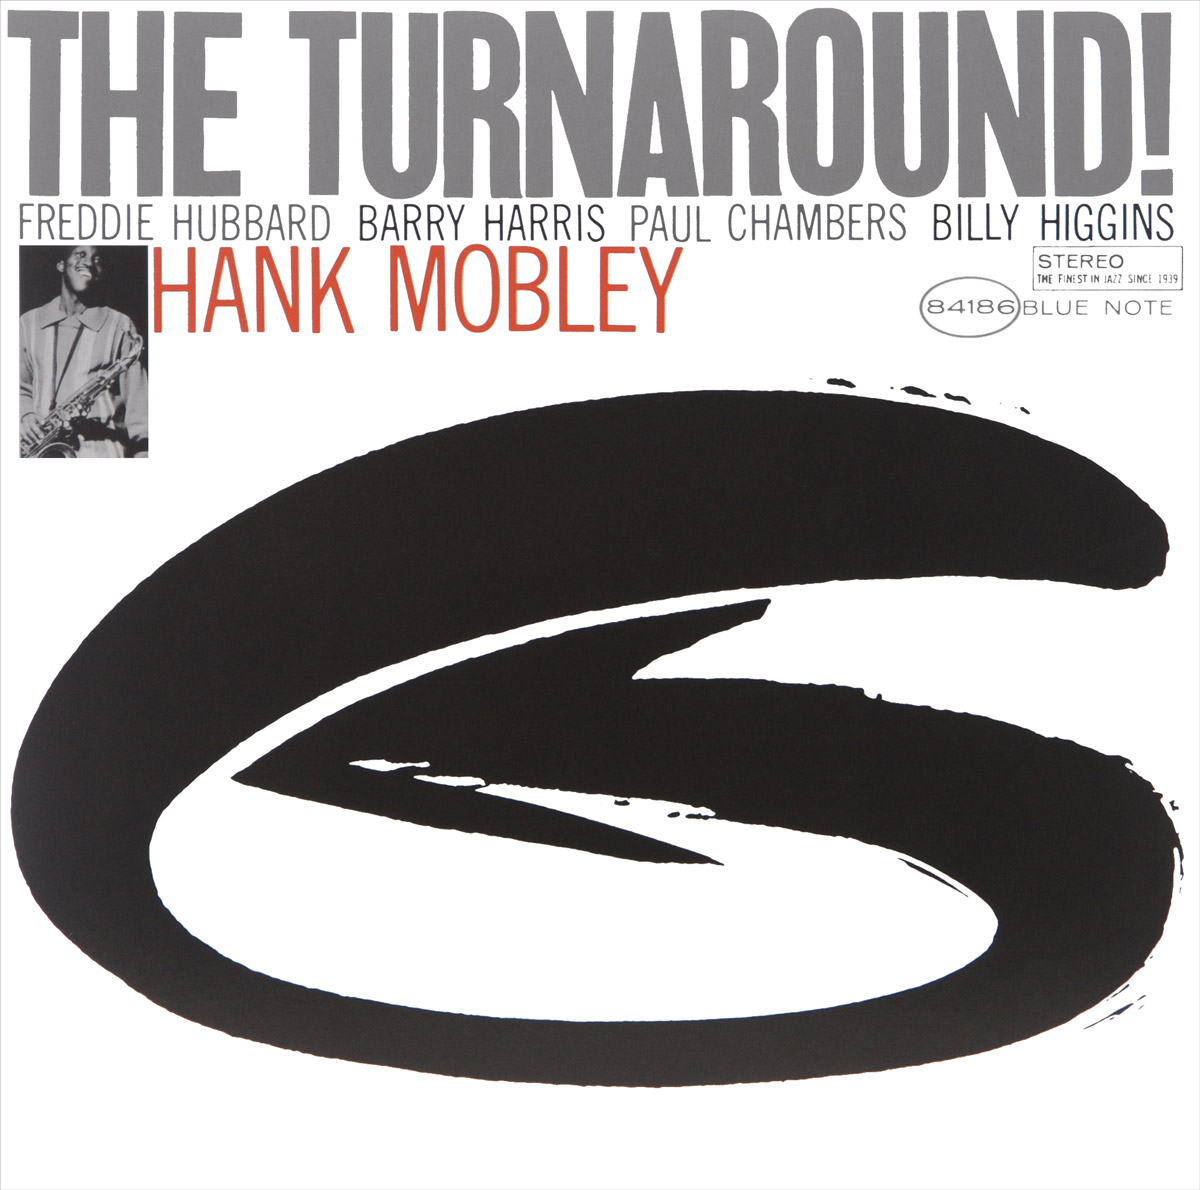 Хэнк Мобли Hank Mobley. The Turnaround (LP) hank mobley no room for squares lp